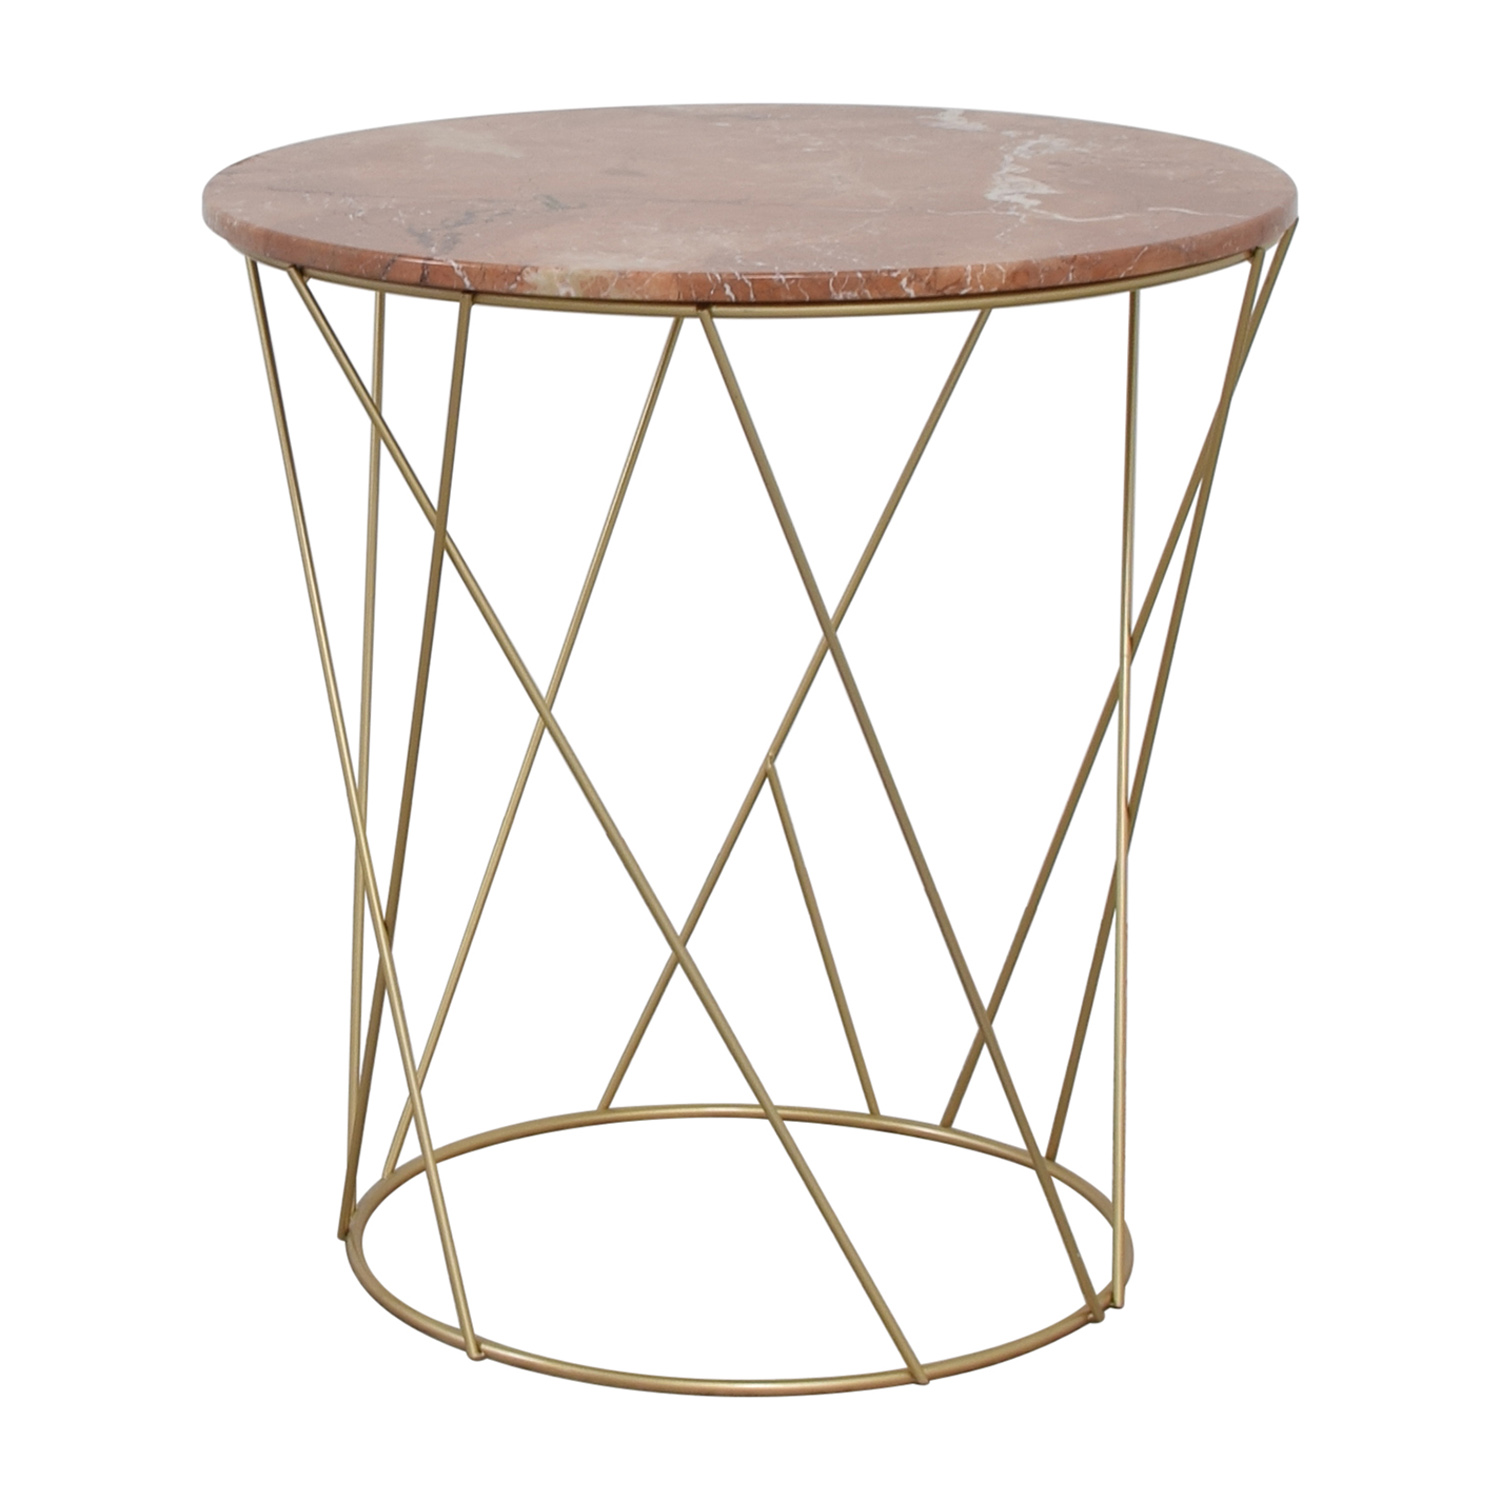 off lotus pink gold round marble table tables used metal accent bedroom furniture chairs monarch hall console cappuccino small desks for spaces blue lamp shade pier one nesting